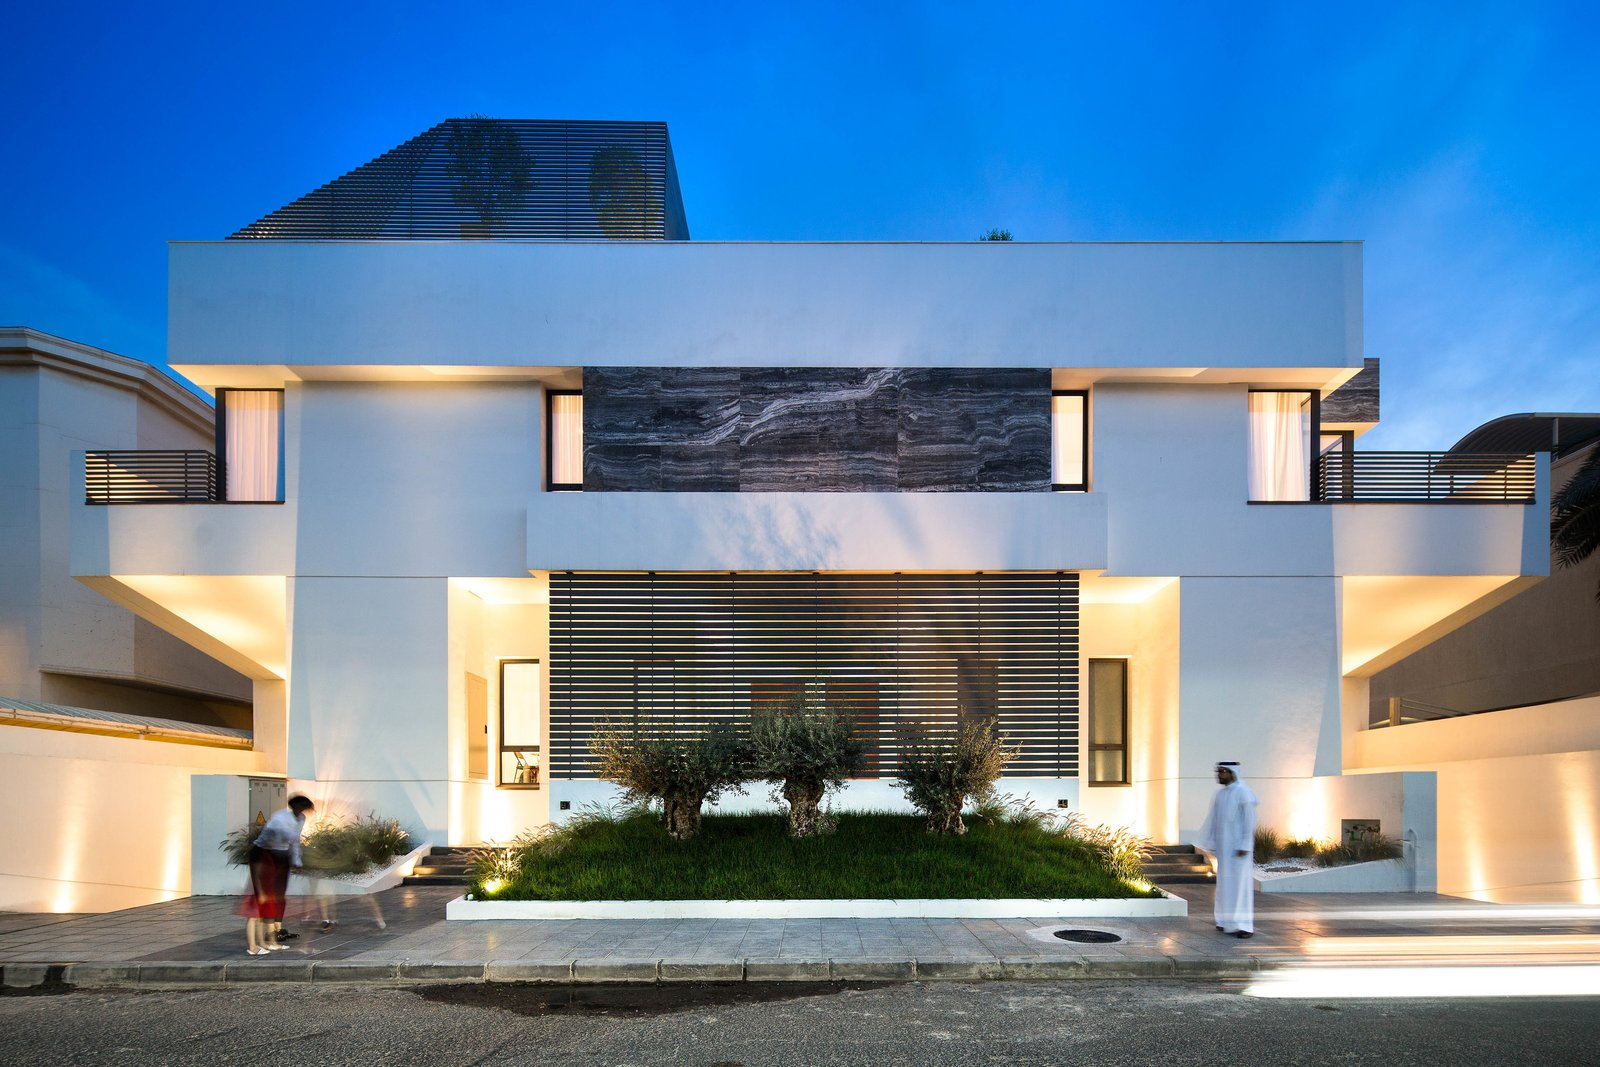 Street view, frontal, dusk Tagged: Outdoor, Trees, Grass, Shrubs, Garden, Raised Planters, Front Yard, Stone, Concrete, Metal, Horizontal, Metal, and Landscape.  Best Outdoor Metal Metal Photos from A House in Yarmouk